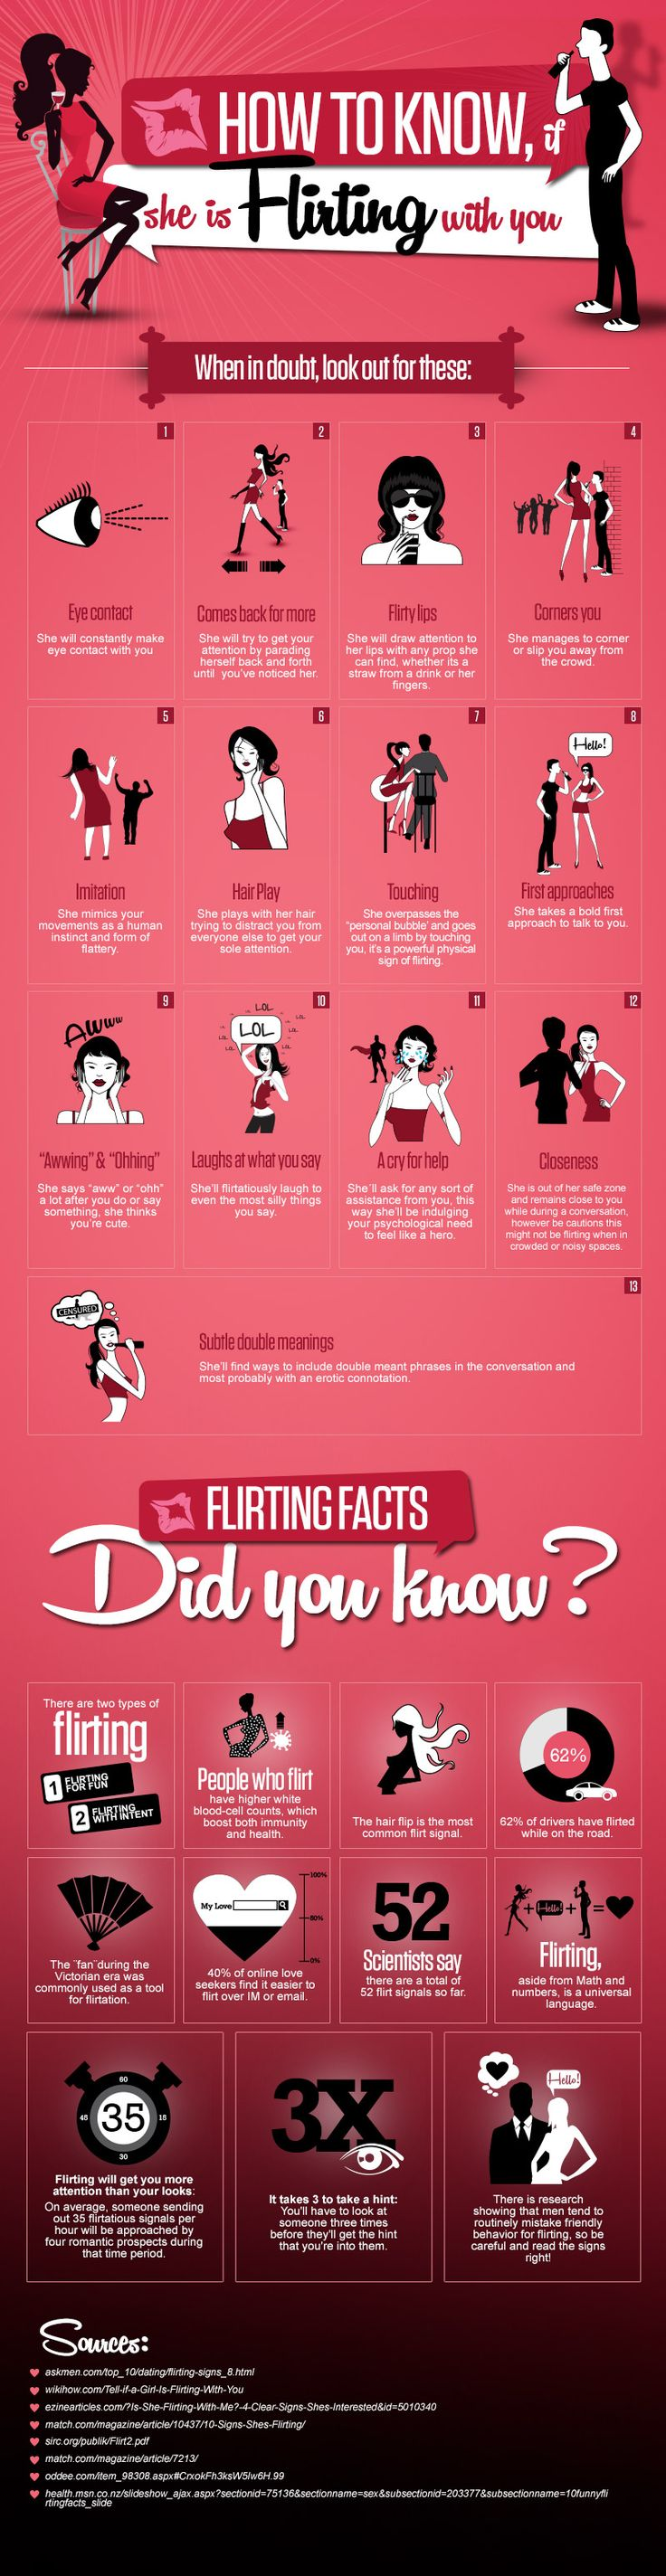 flirting signs on facebook profile images women